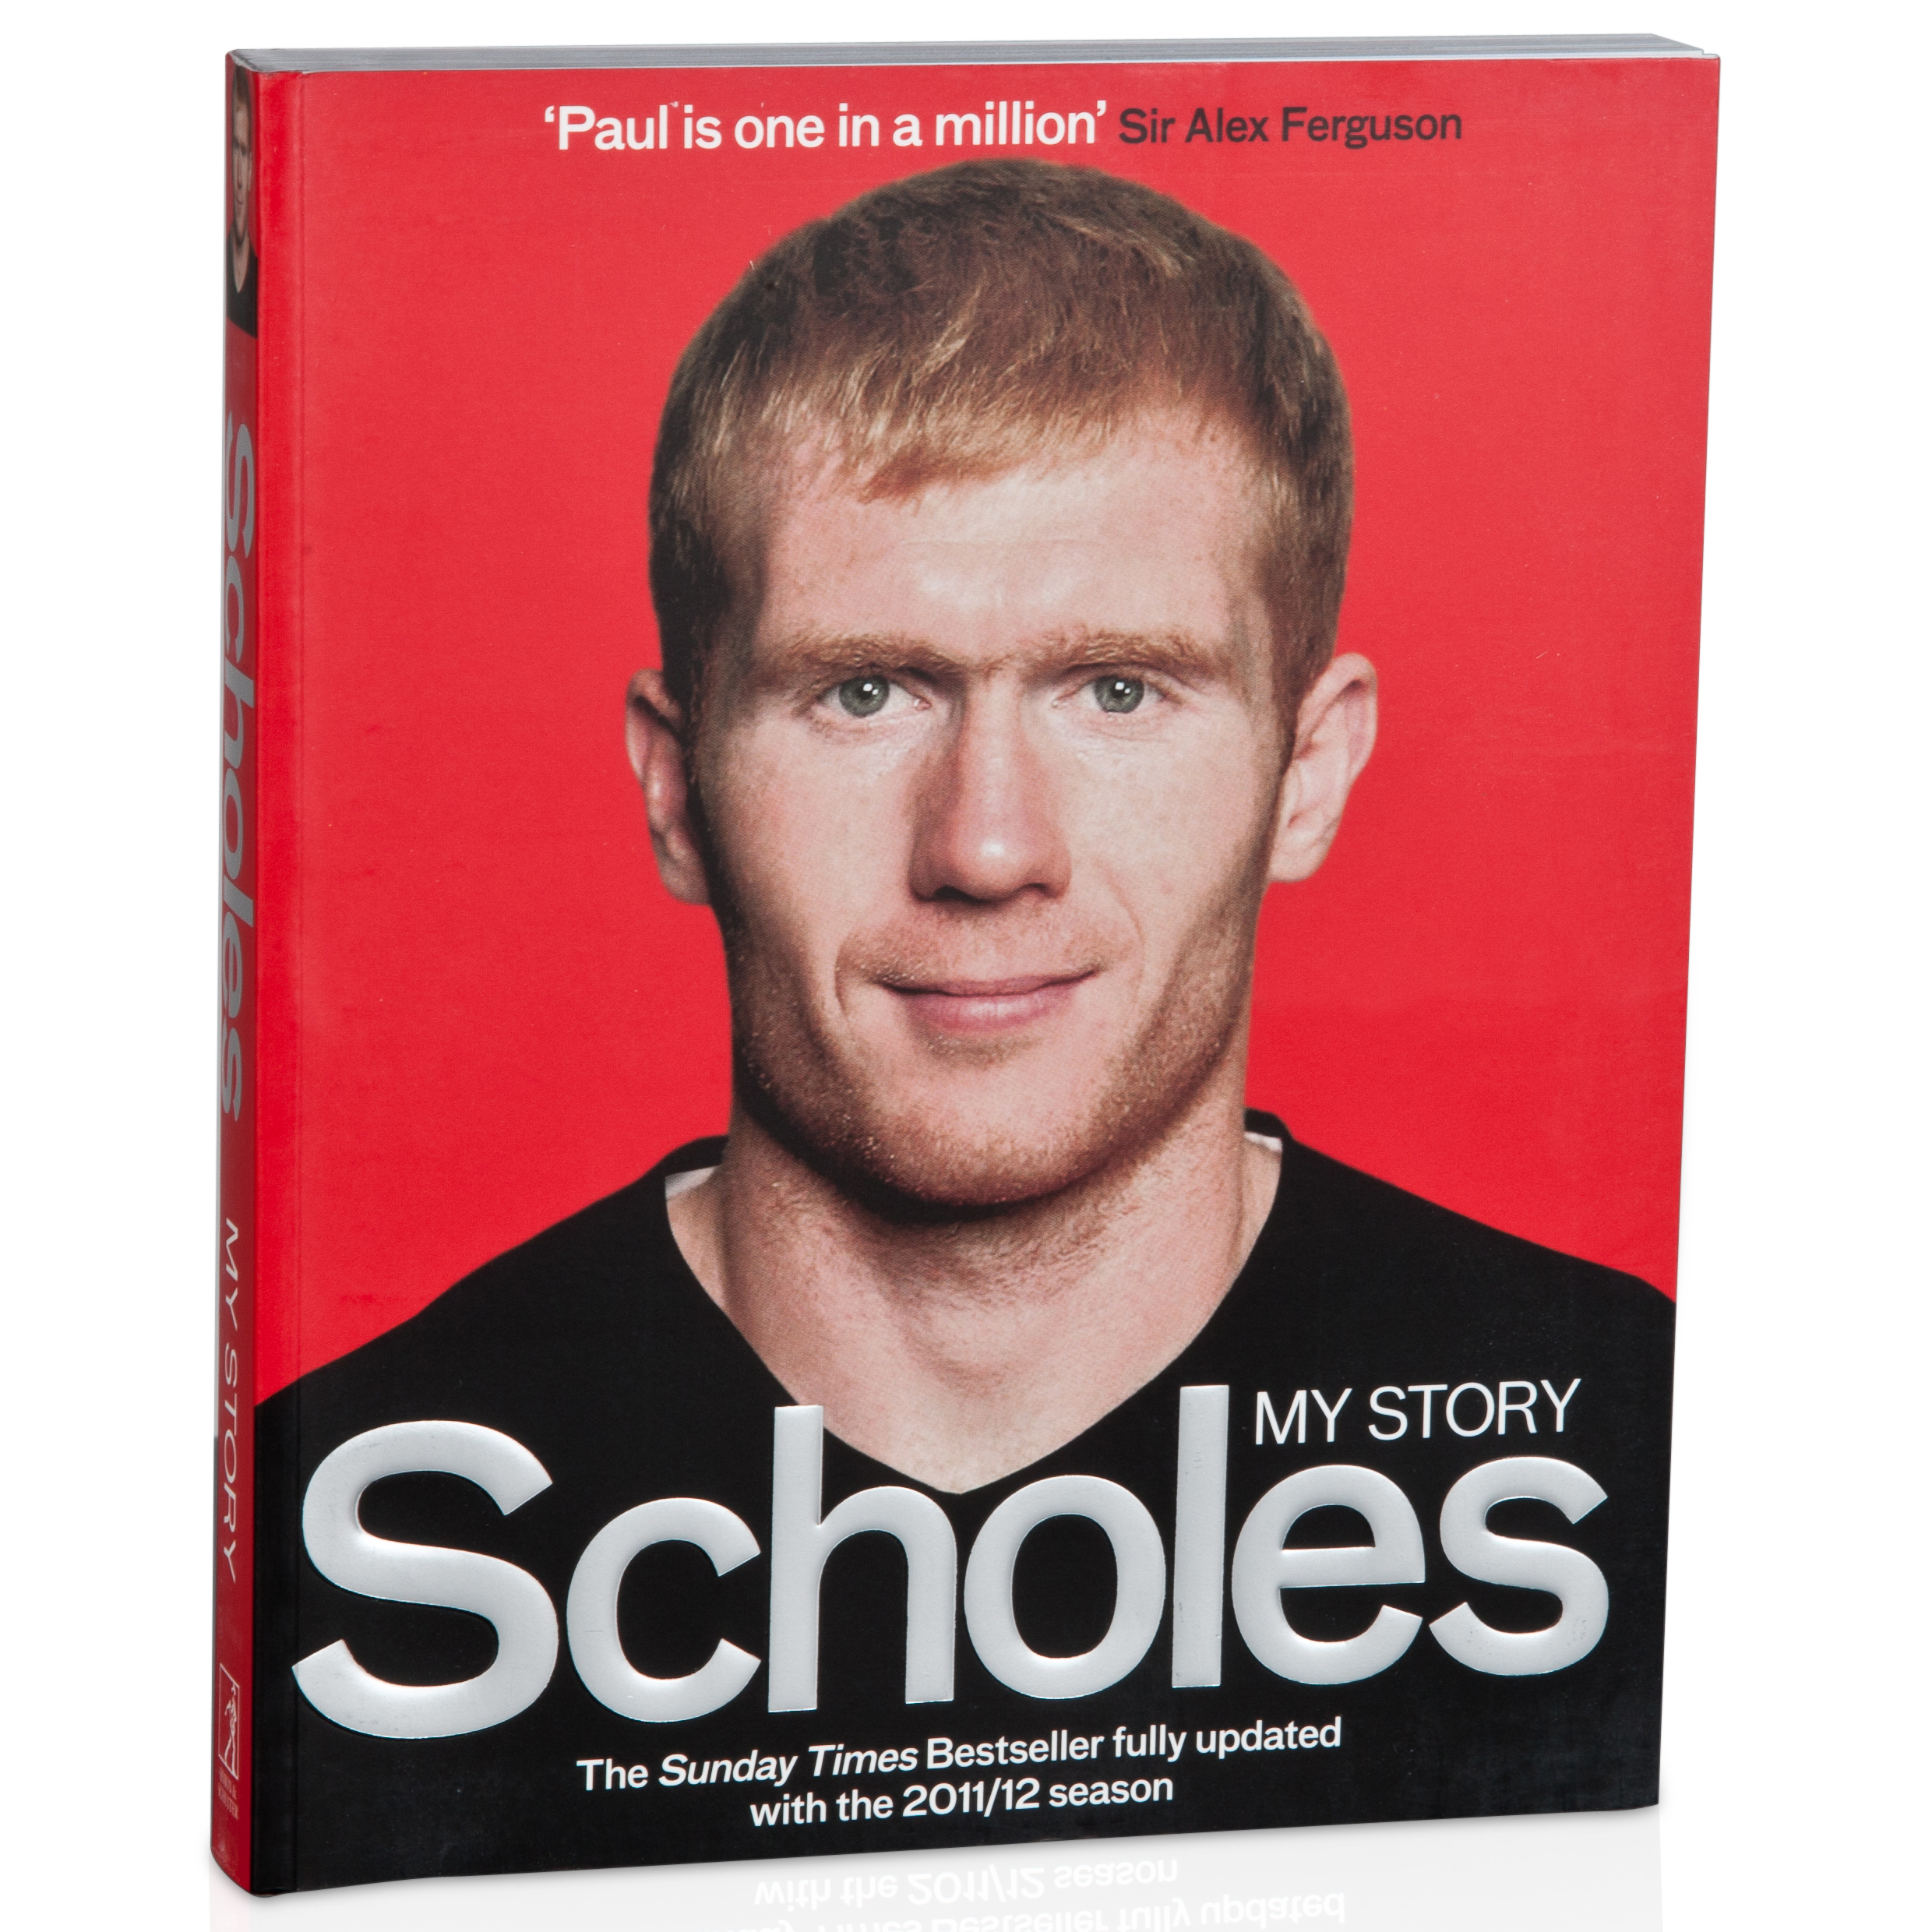 Manchester United Scholes My Story Paperback Book